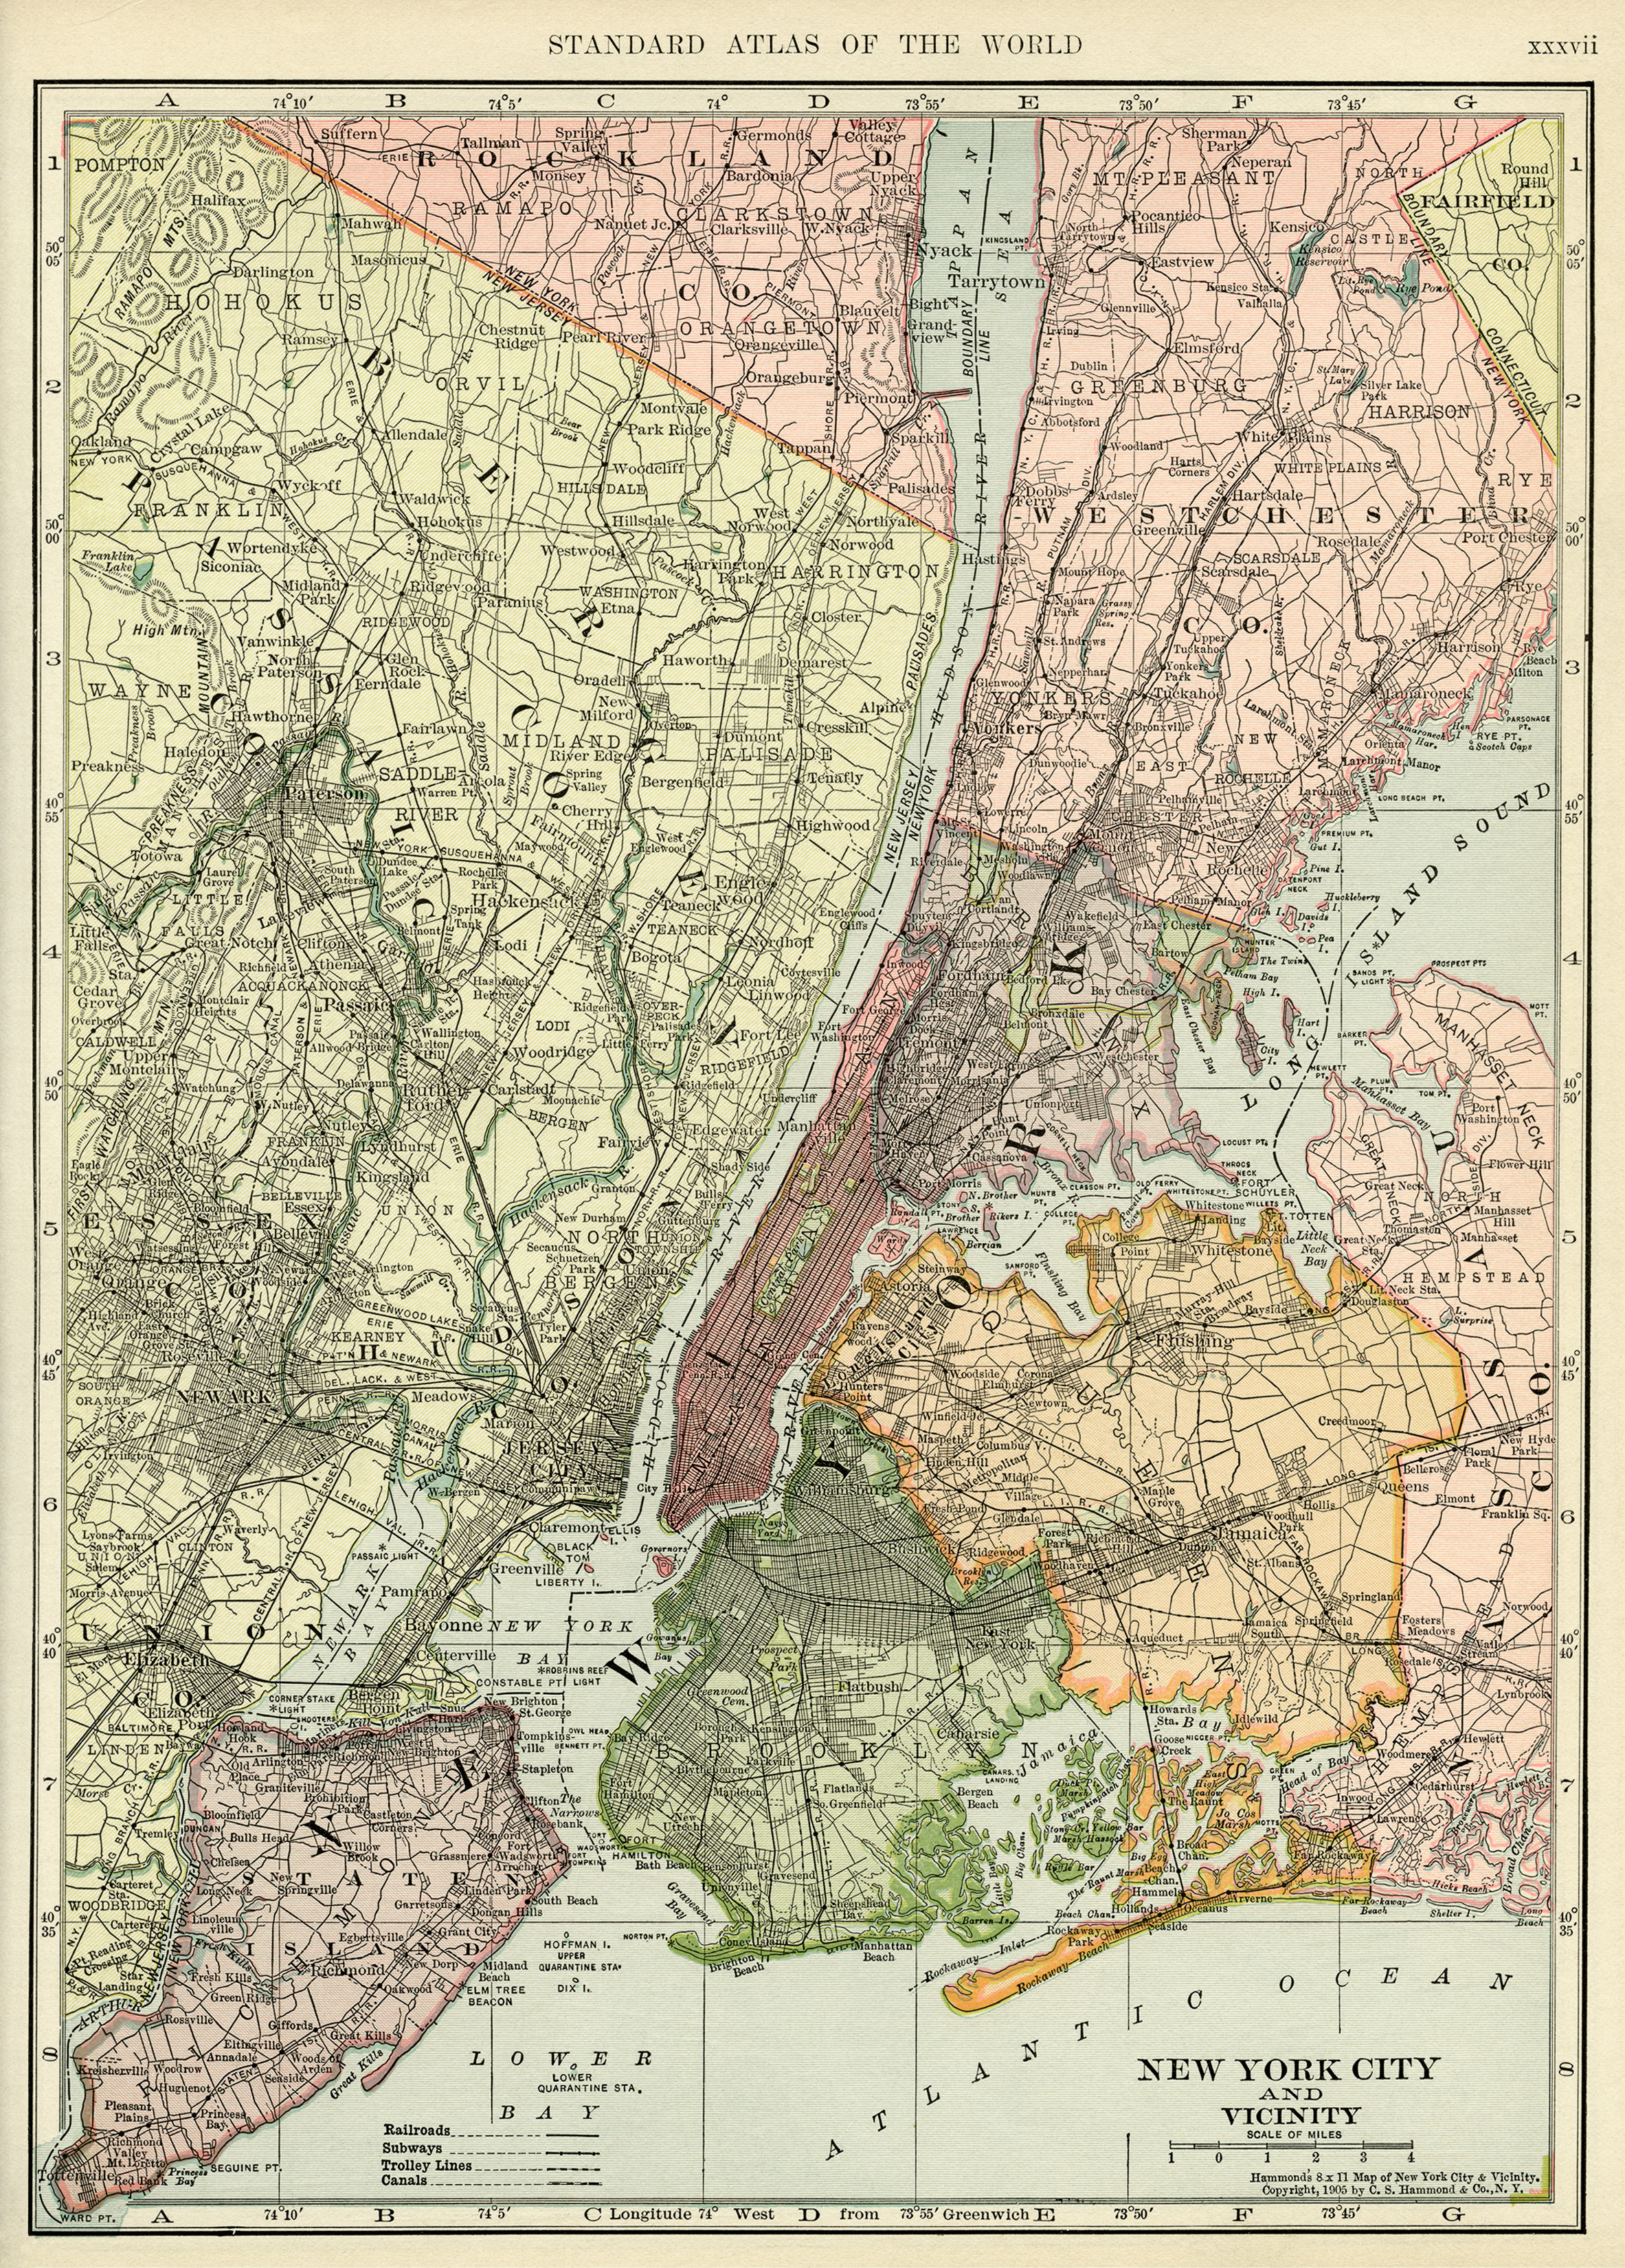 Free Map Of New York City.Map Of New York City Free Vintage Image Old Design Shop Blog